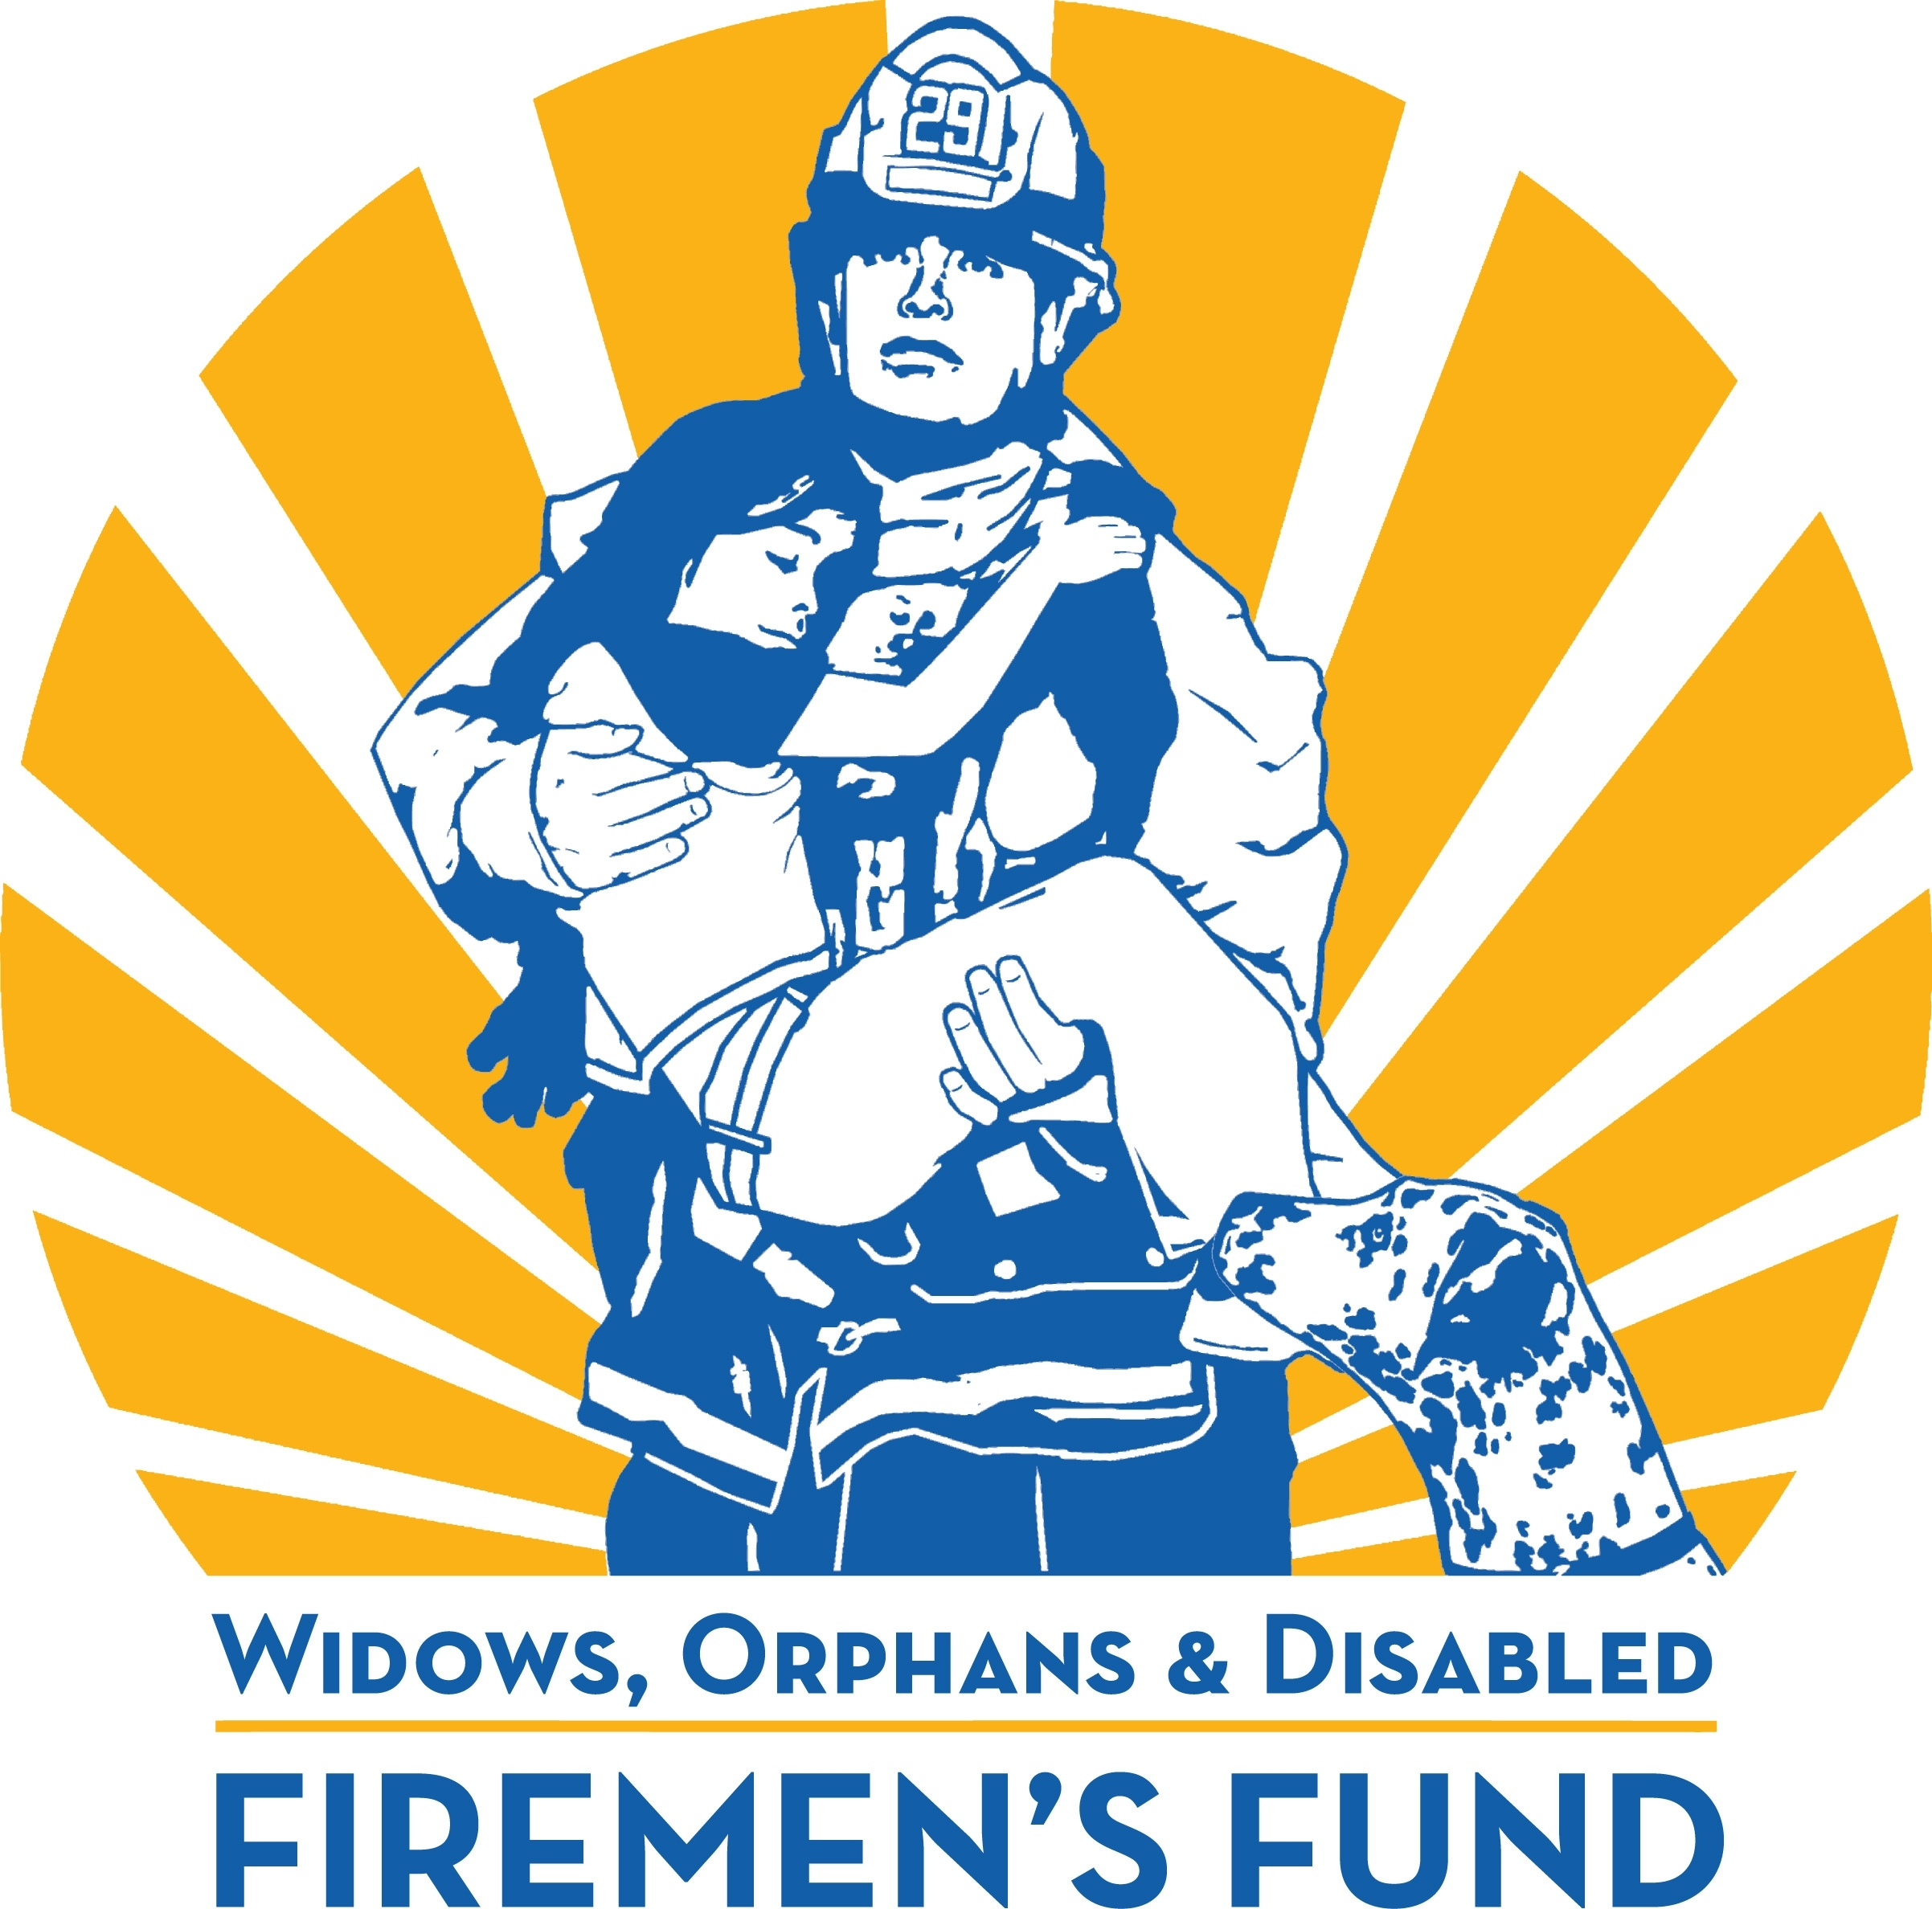 Widows, Orphans and Disabled Fireman's Fund